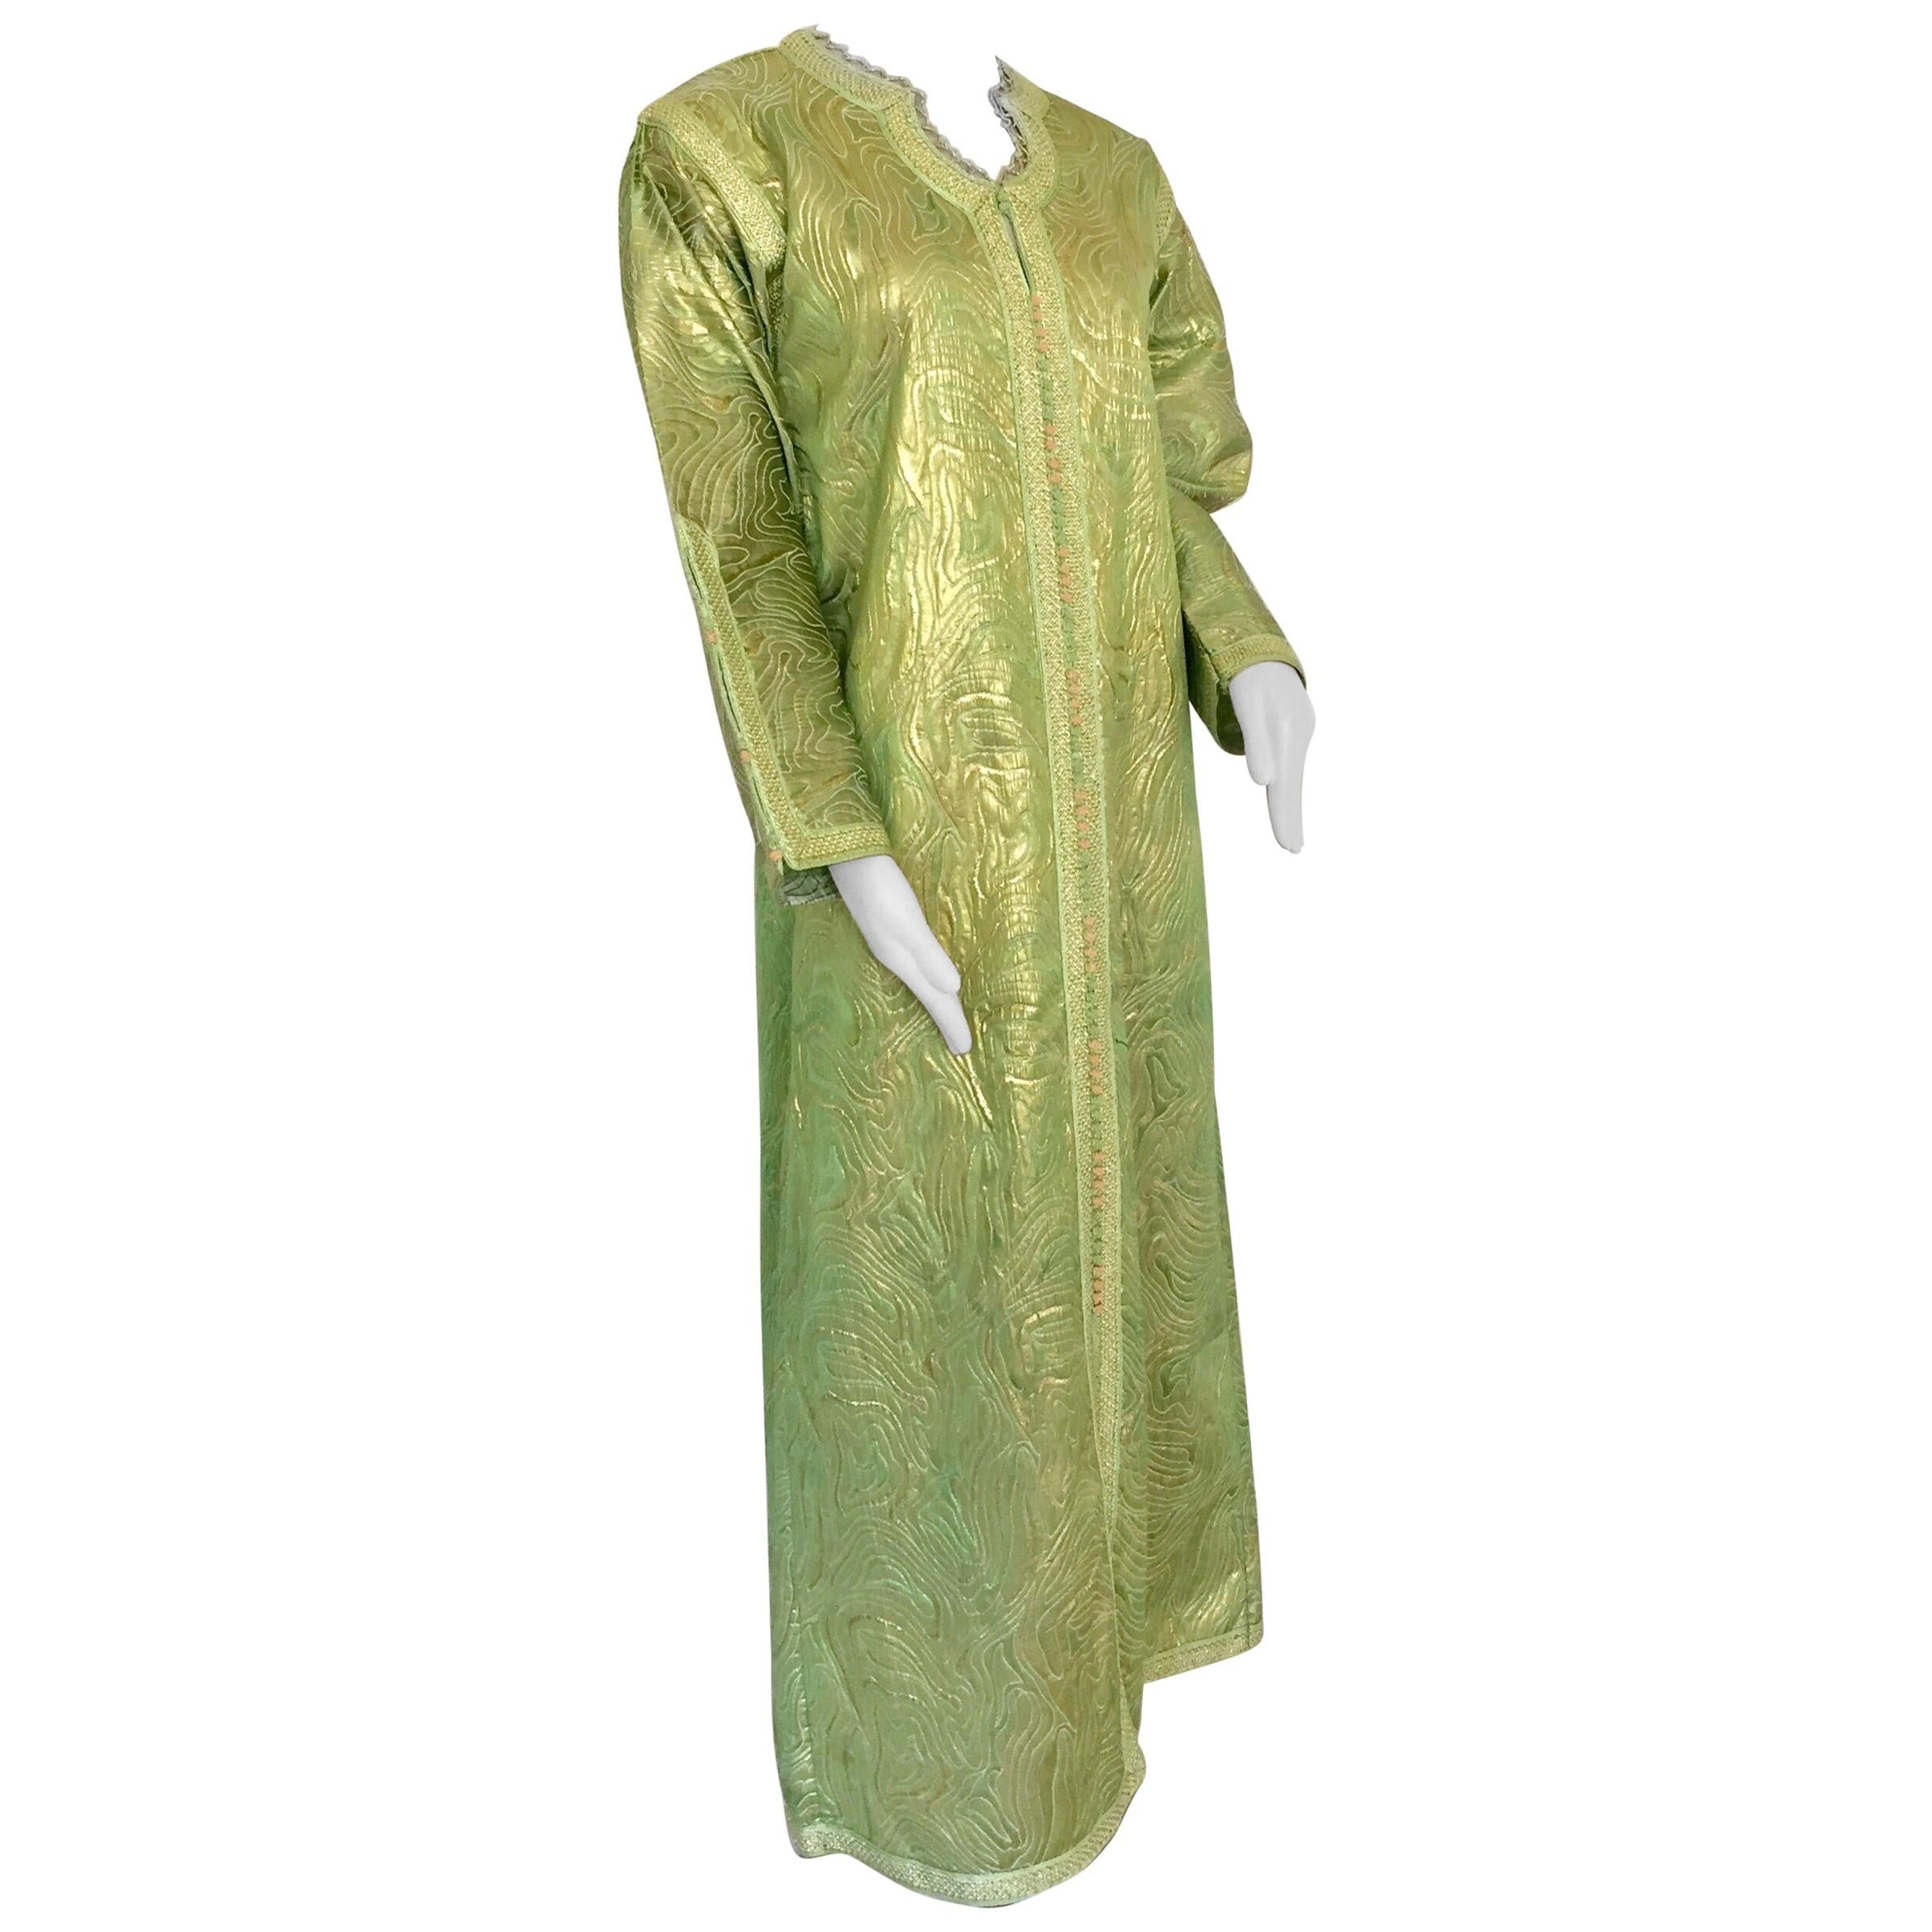 Moroccan Kaftan in Green and Gold Brocade Metallic Lame